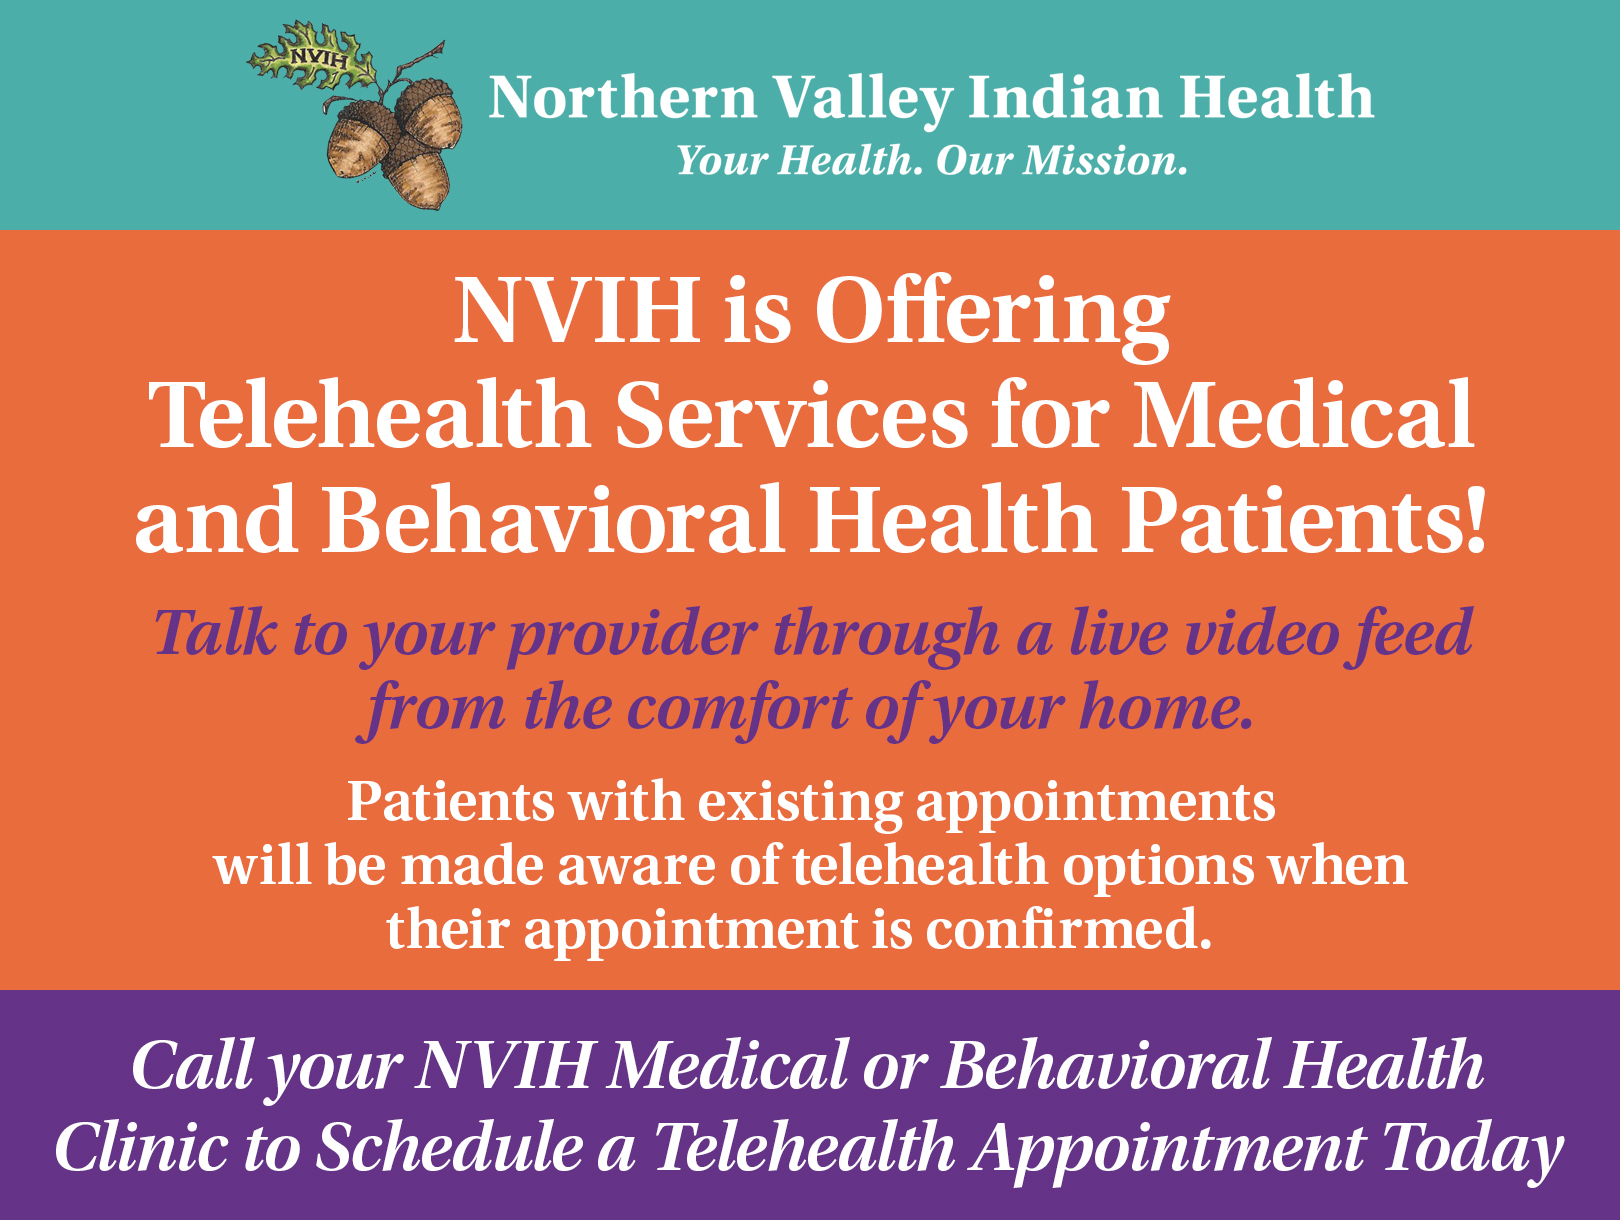 NVIH is offering Telehealth services!